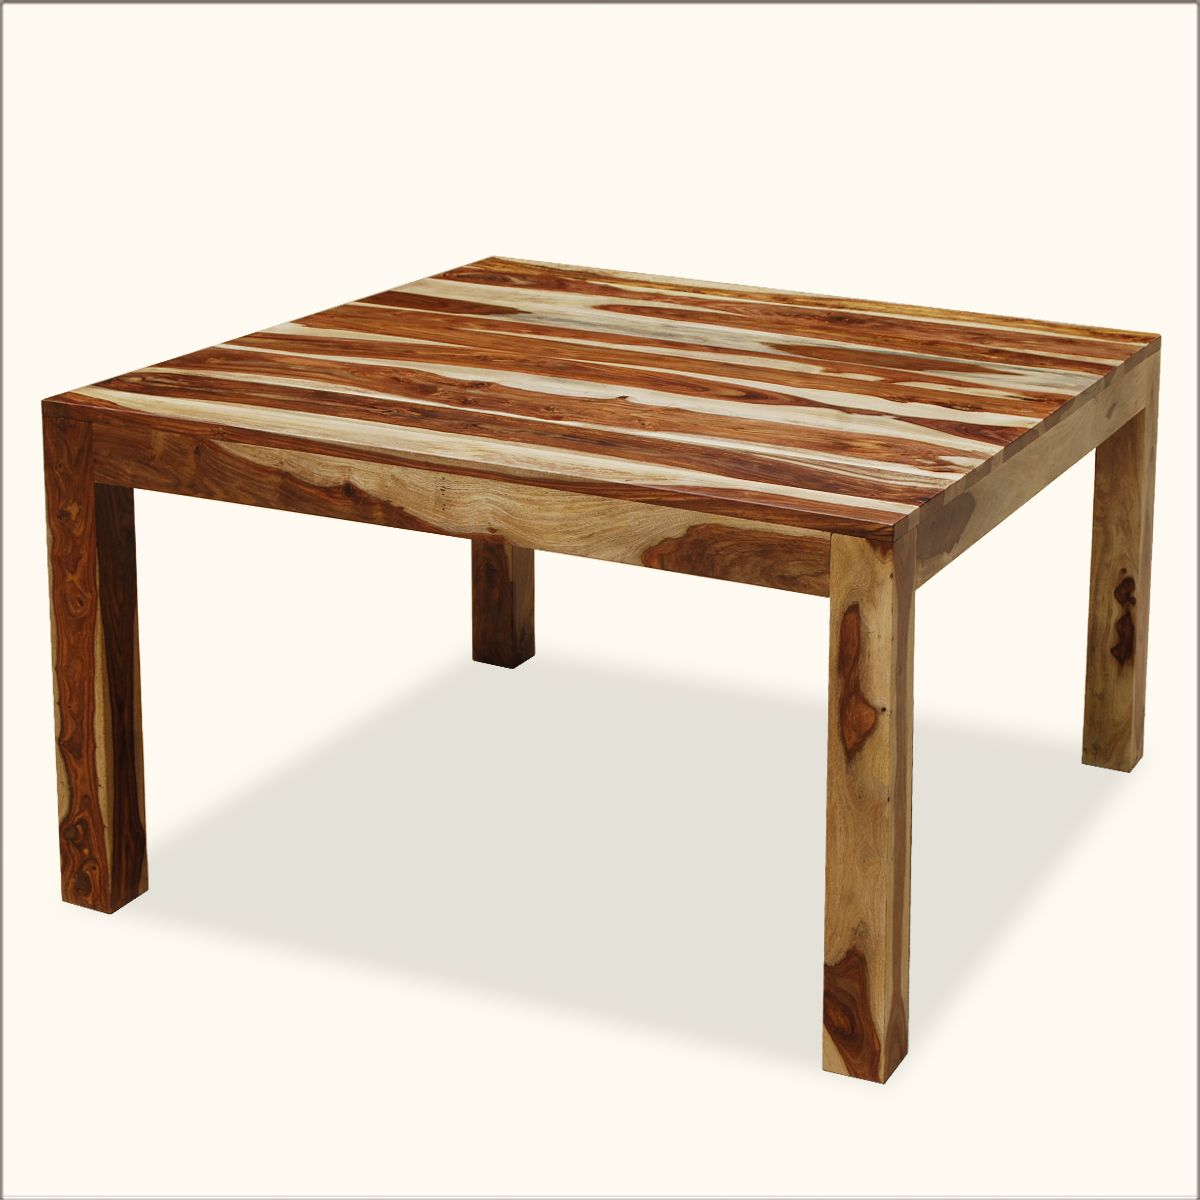 Square wood dining table - Kluane Solid Wood Counter Height Square Dining Table